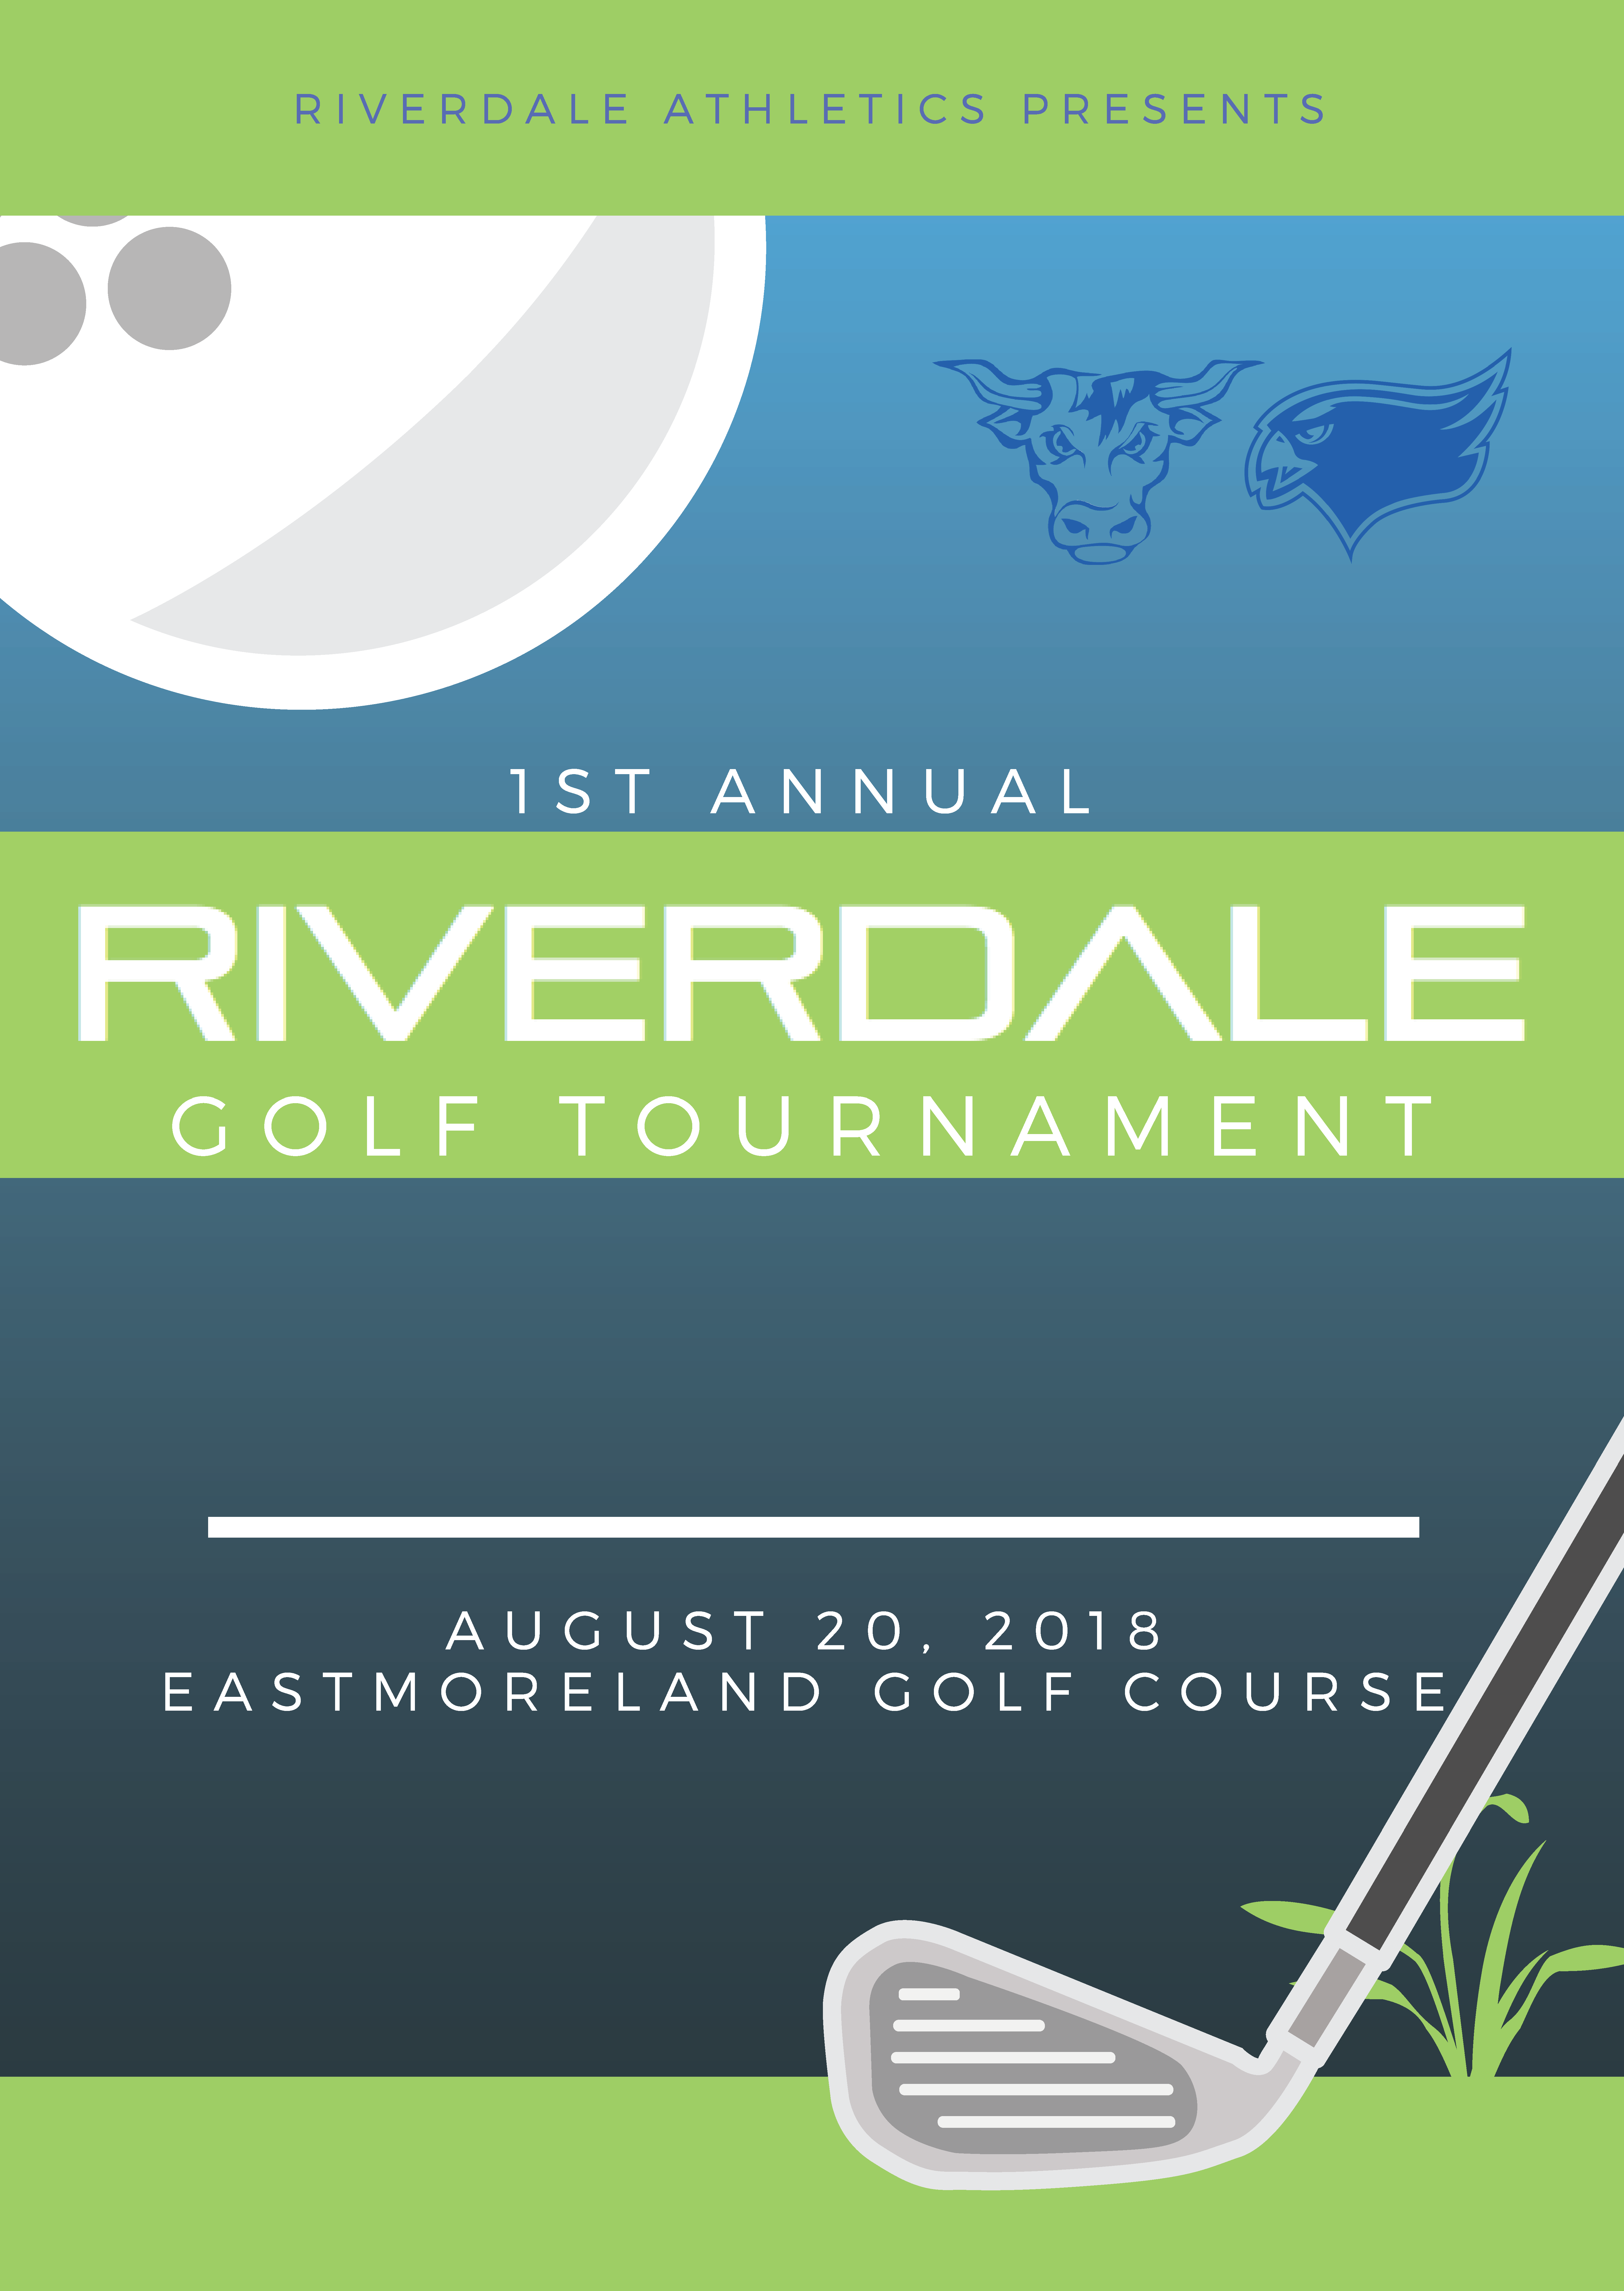 1st Annual Riverdale Athletics Golf Tournament Announced